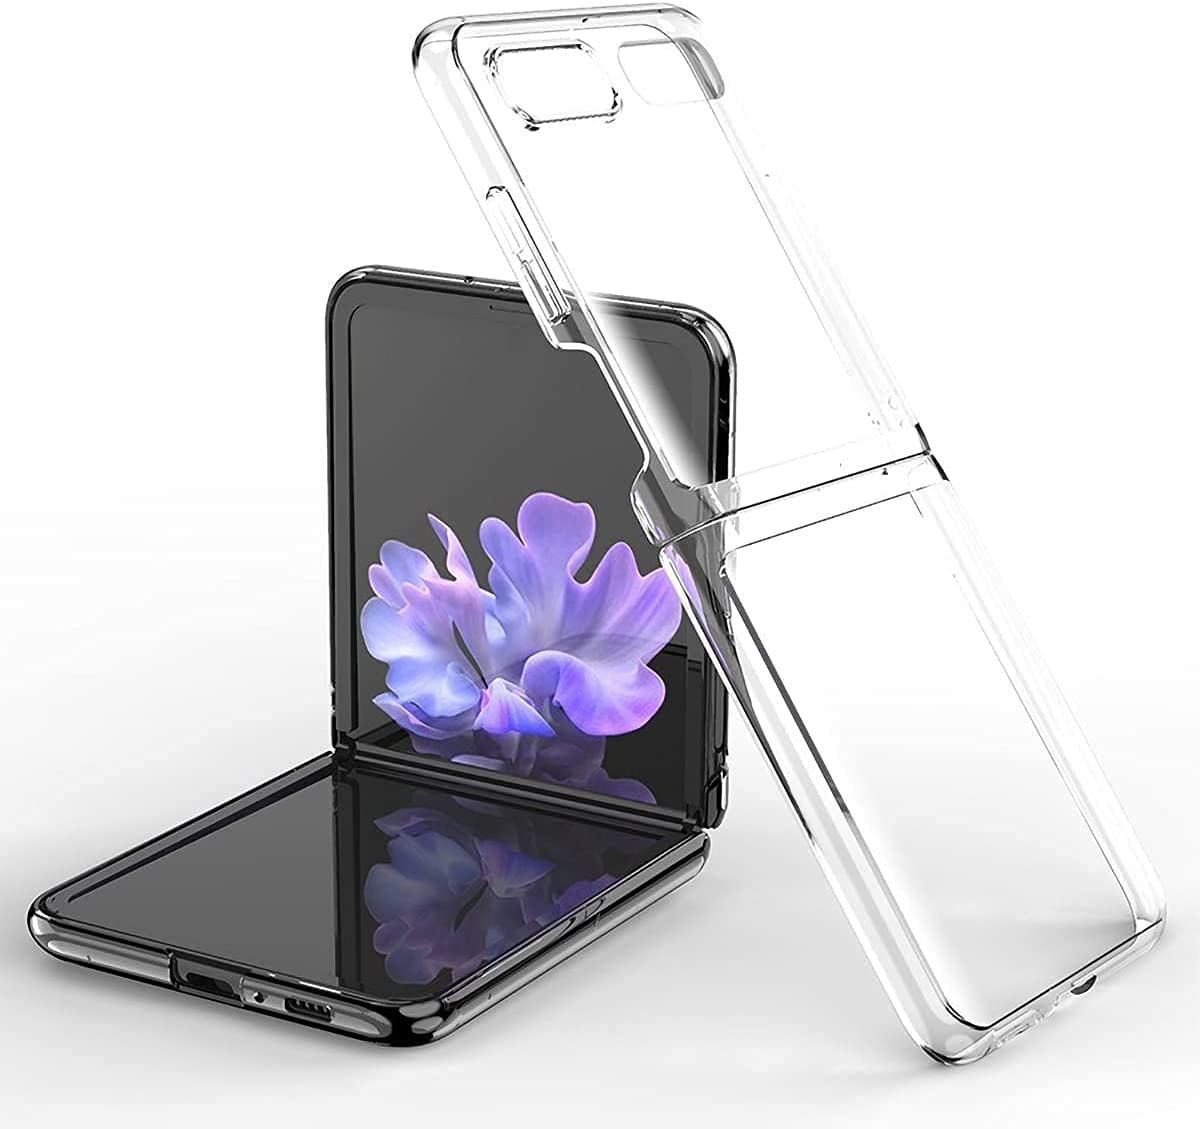 Koconh for Samsung Galaxy Z Flip 3 Case - 360° Full Protection Clear Crystal Transparent Plating Case - for Z Flip 3 Case, for Galaxy Z Flip 3 Case